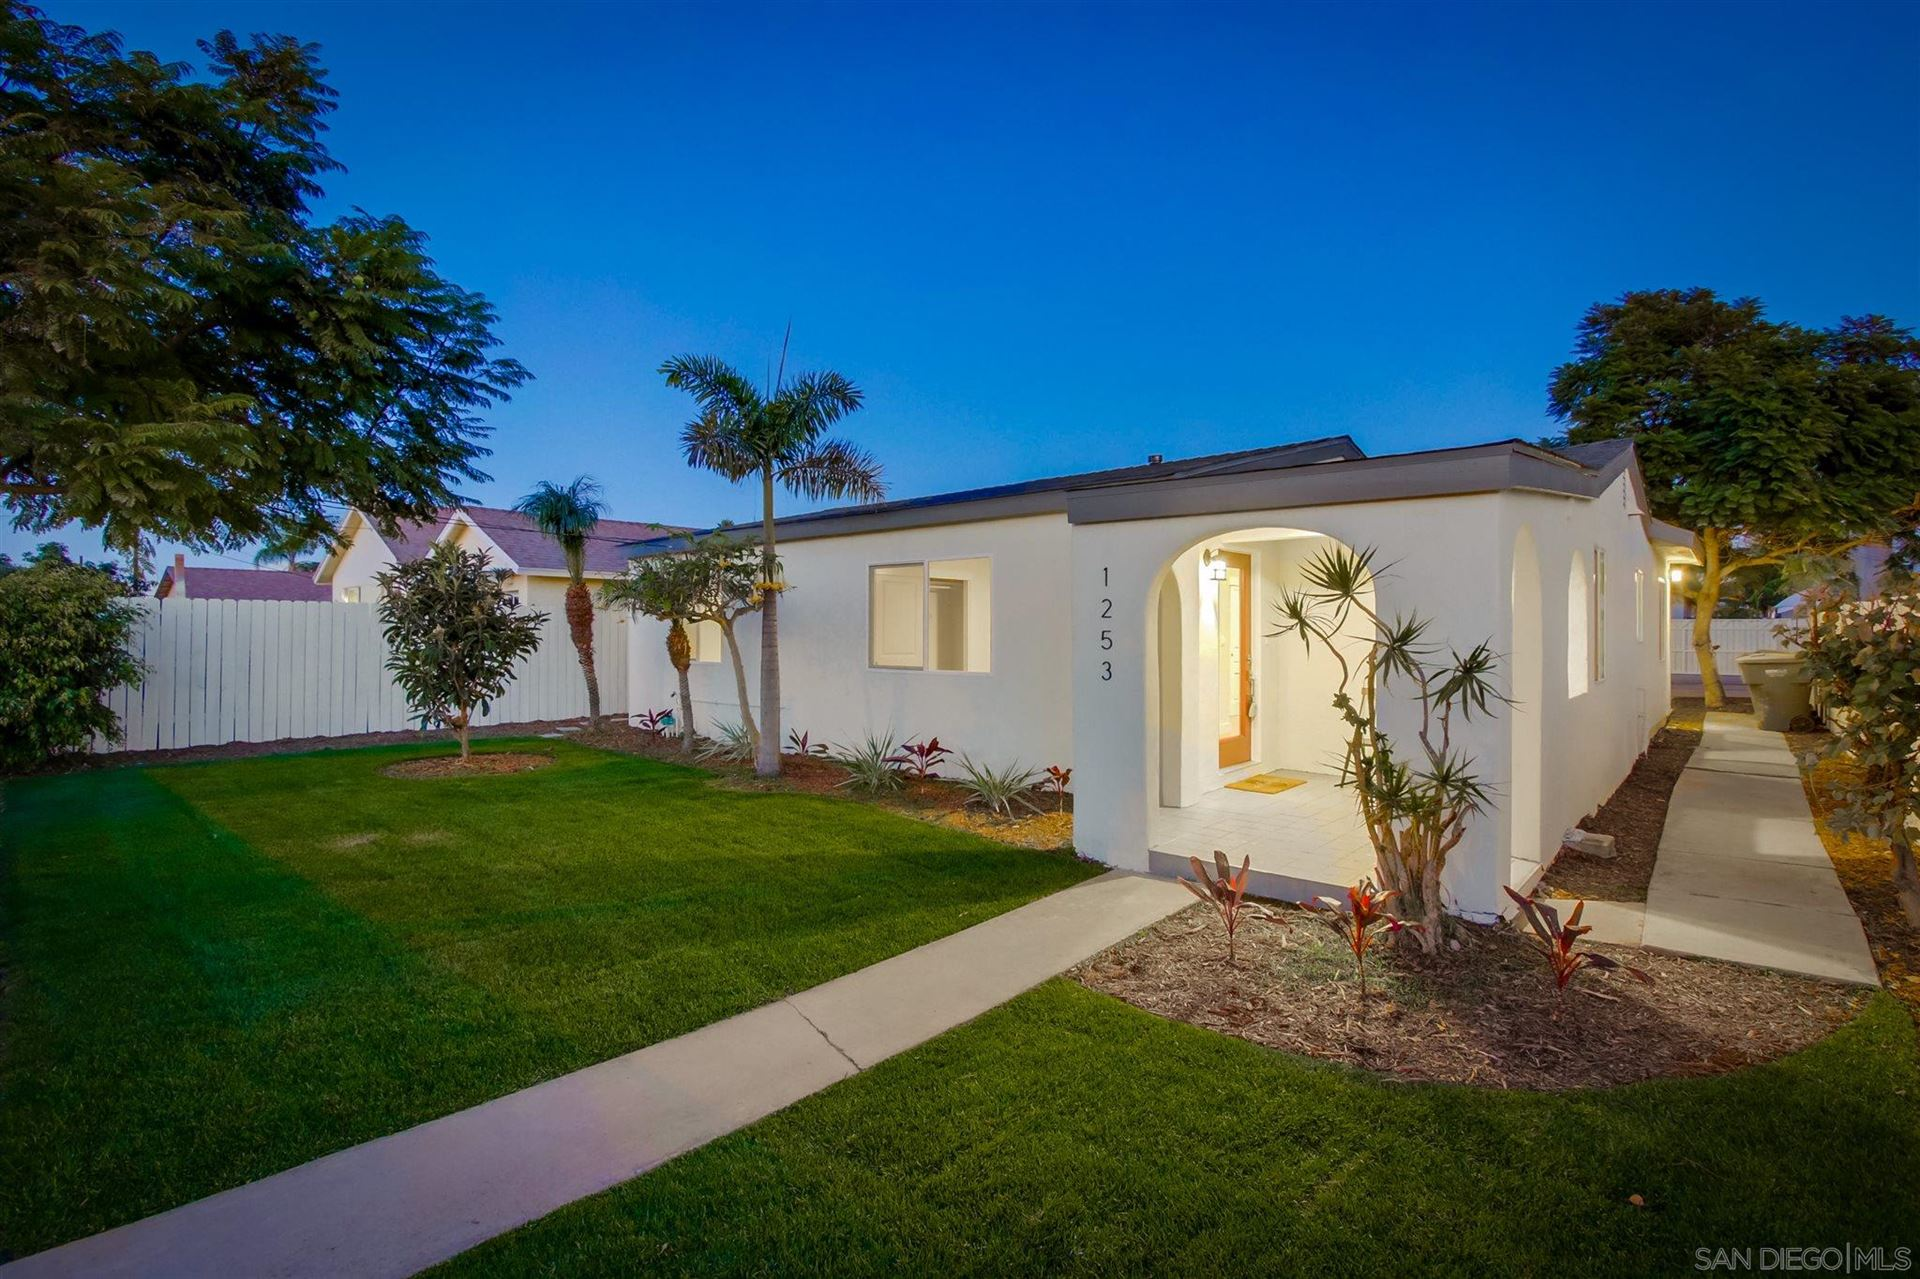 Photo of 1253 Florence Street, Imperial Beach, CA 91932 (MLS # 200053367)